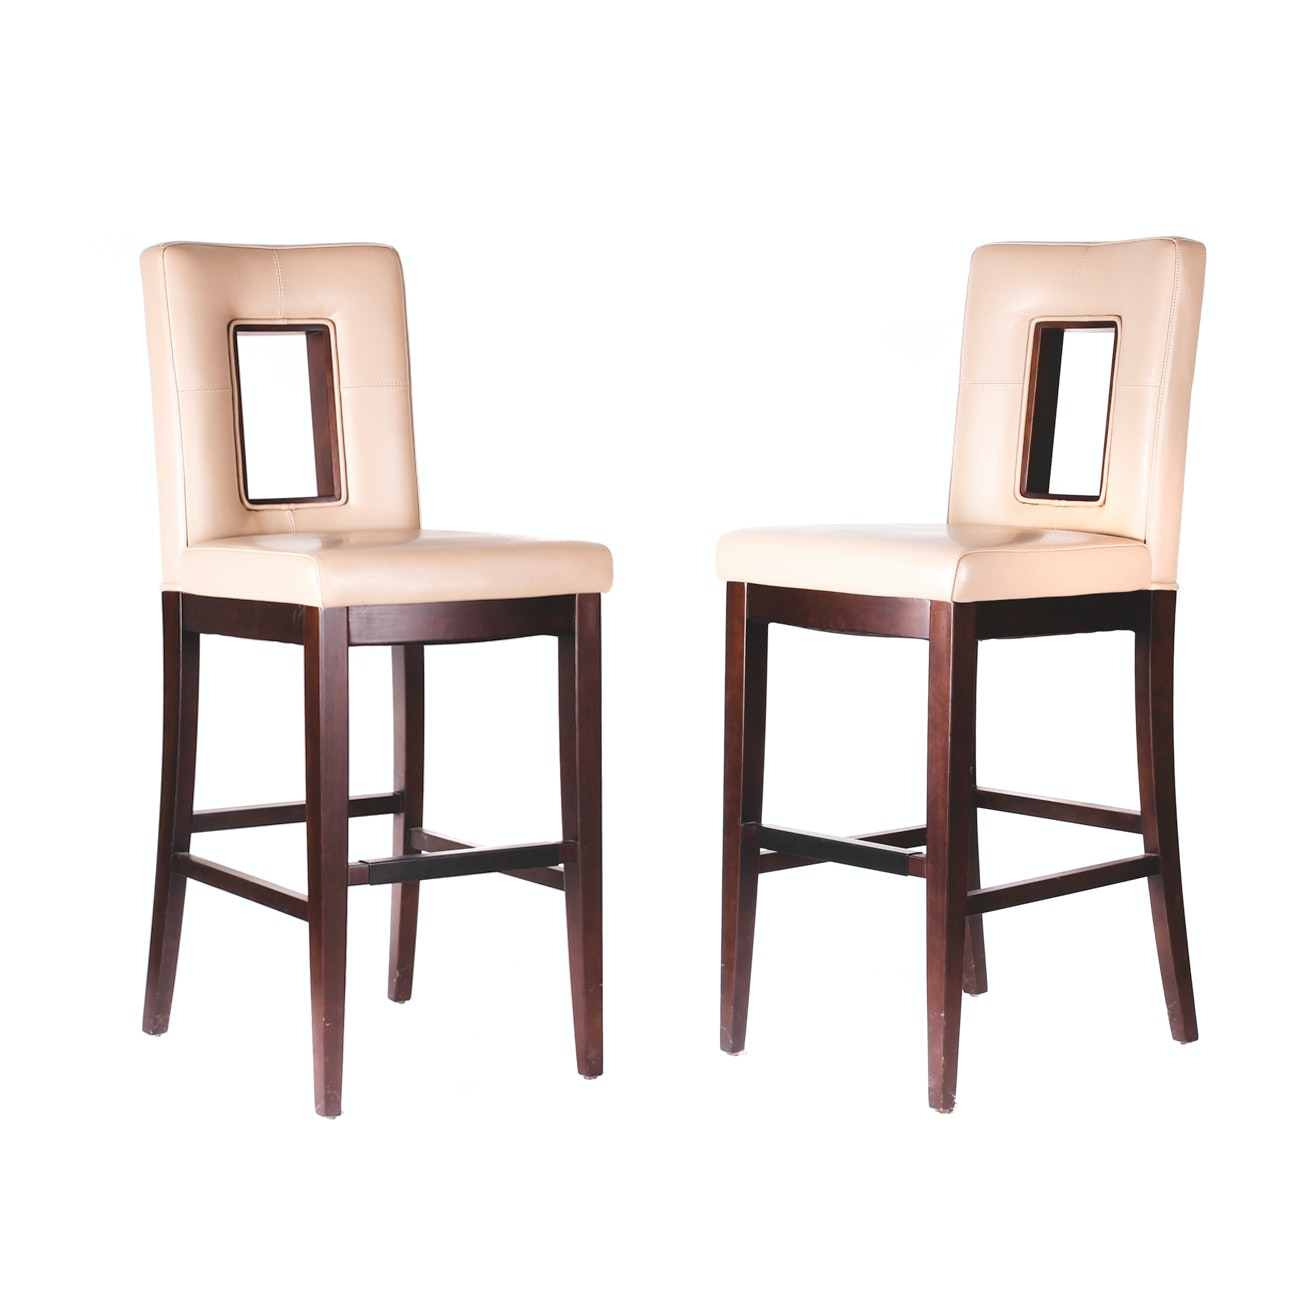 Zhe Jang Furniture Contemporary Style Leather Barstools